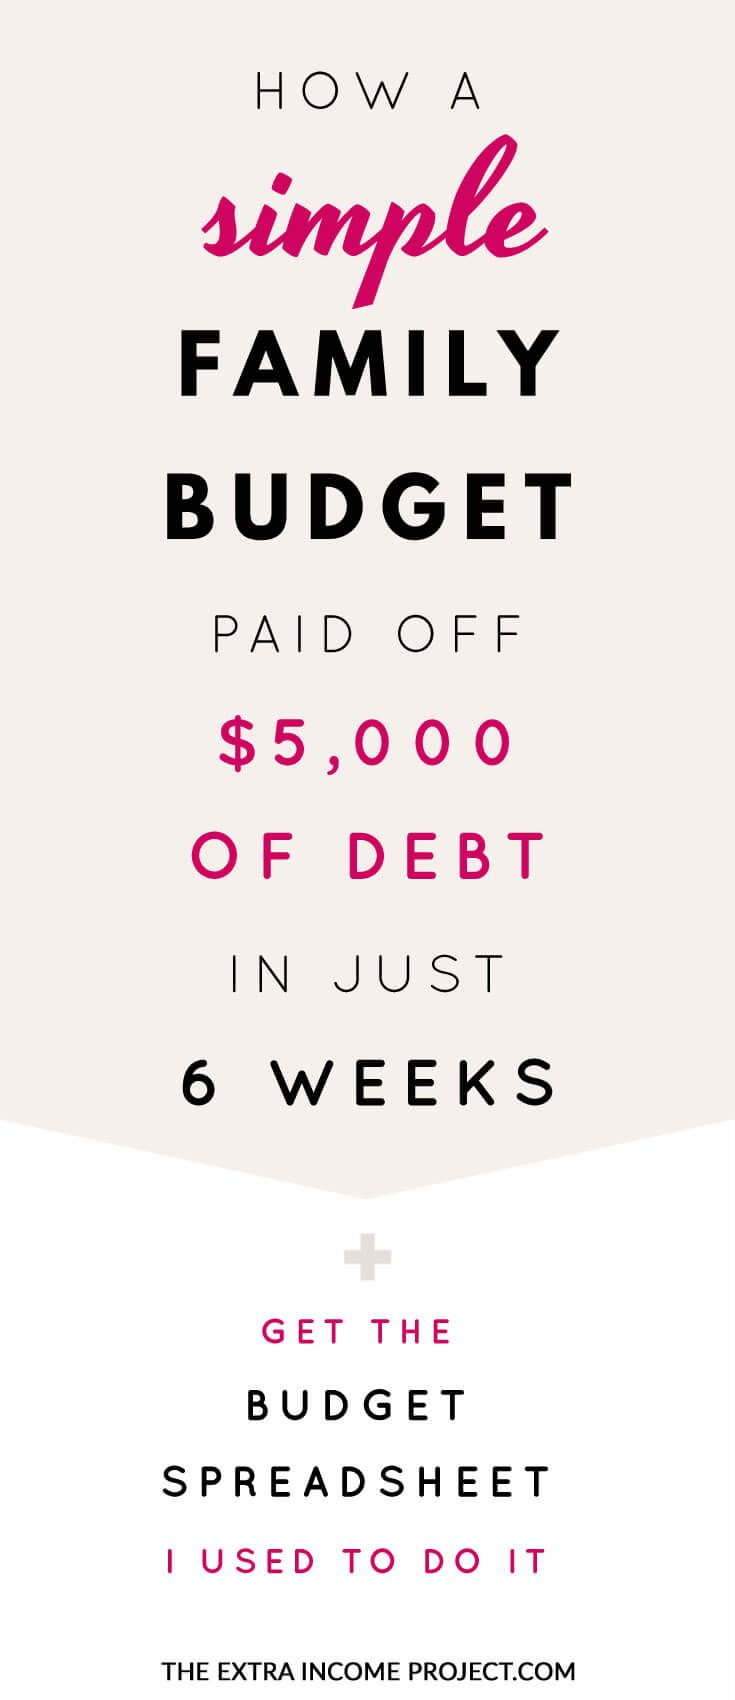 Do you have any idea how much setting up and keeping to a family budget can save you? Last year I was in up to my eyeballs in debt I was struggling living paych